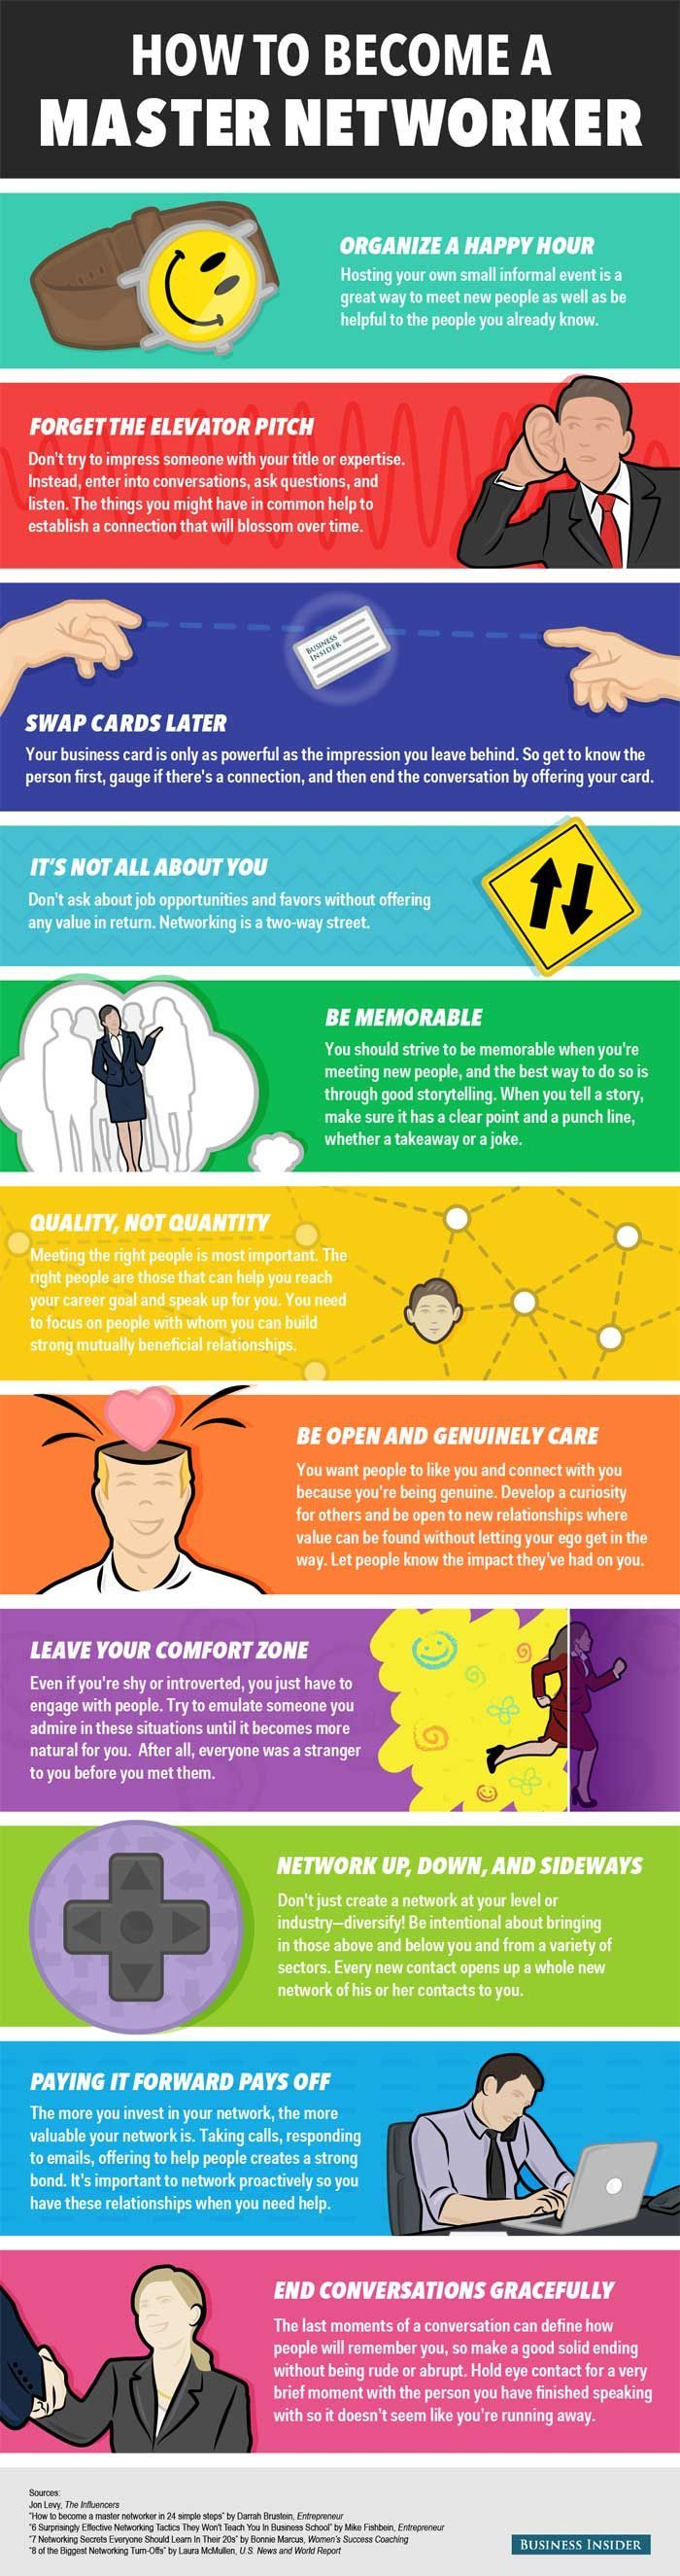 Superb 11 Helpful Tips For Becoming A Better Networker [Infographic] You Looking  For Help Get Going Your Network Marketing Business?